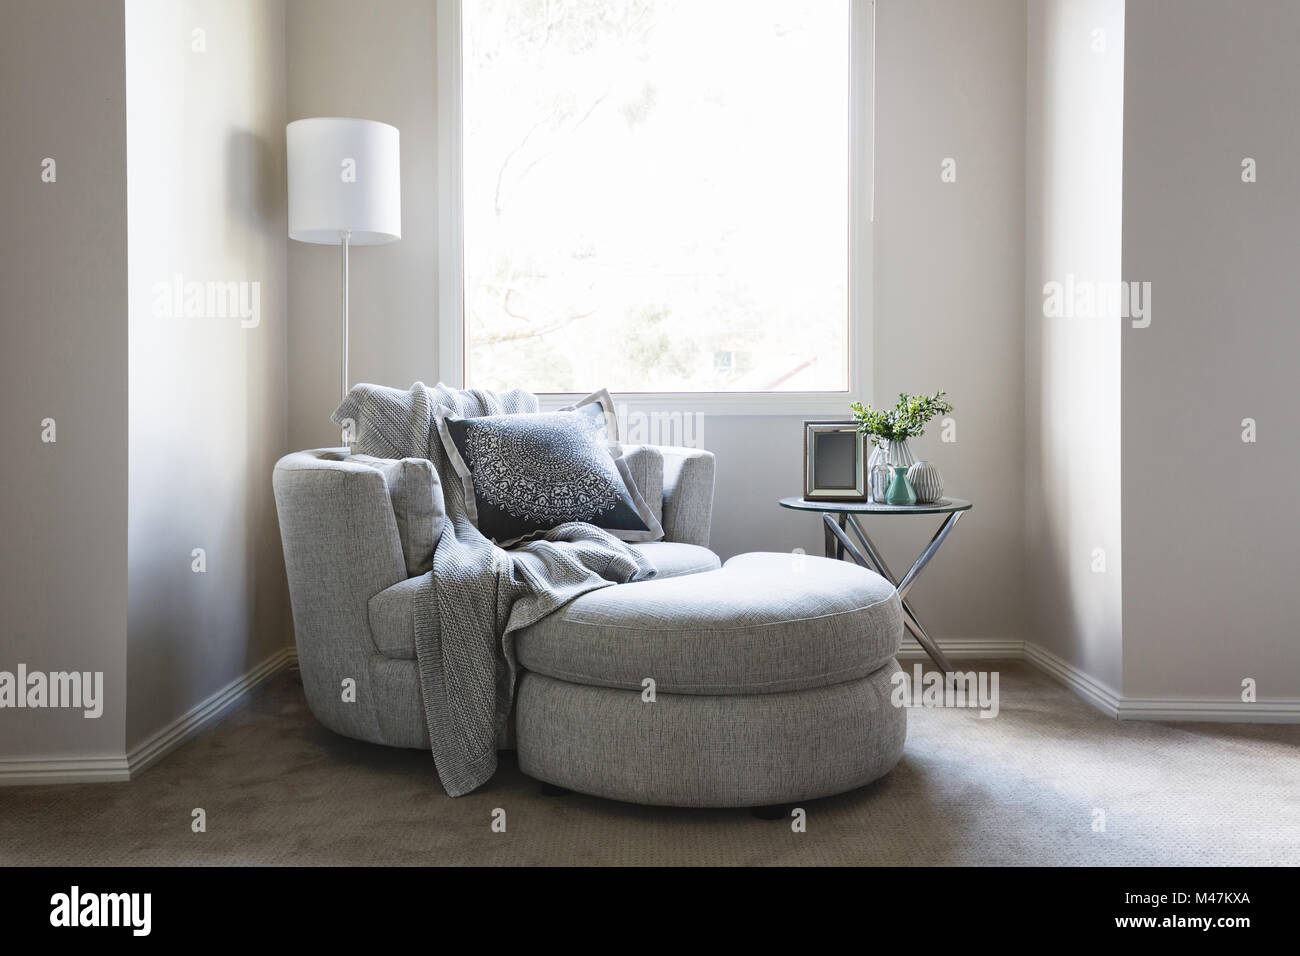 Gorgeous bedroom sofa chair with throw rug and cushion Stock Photo